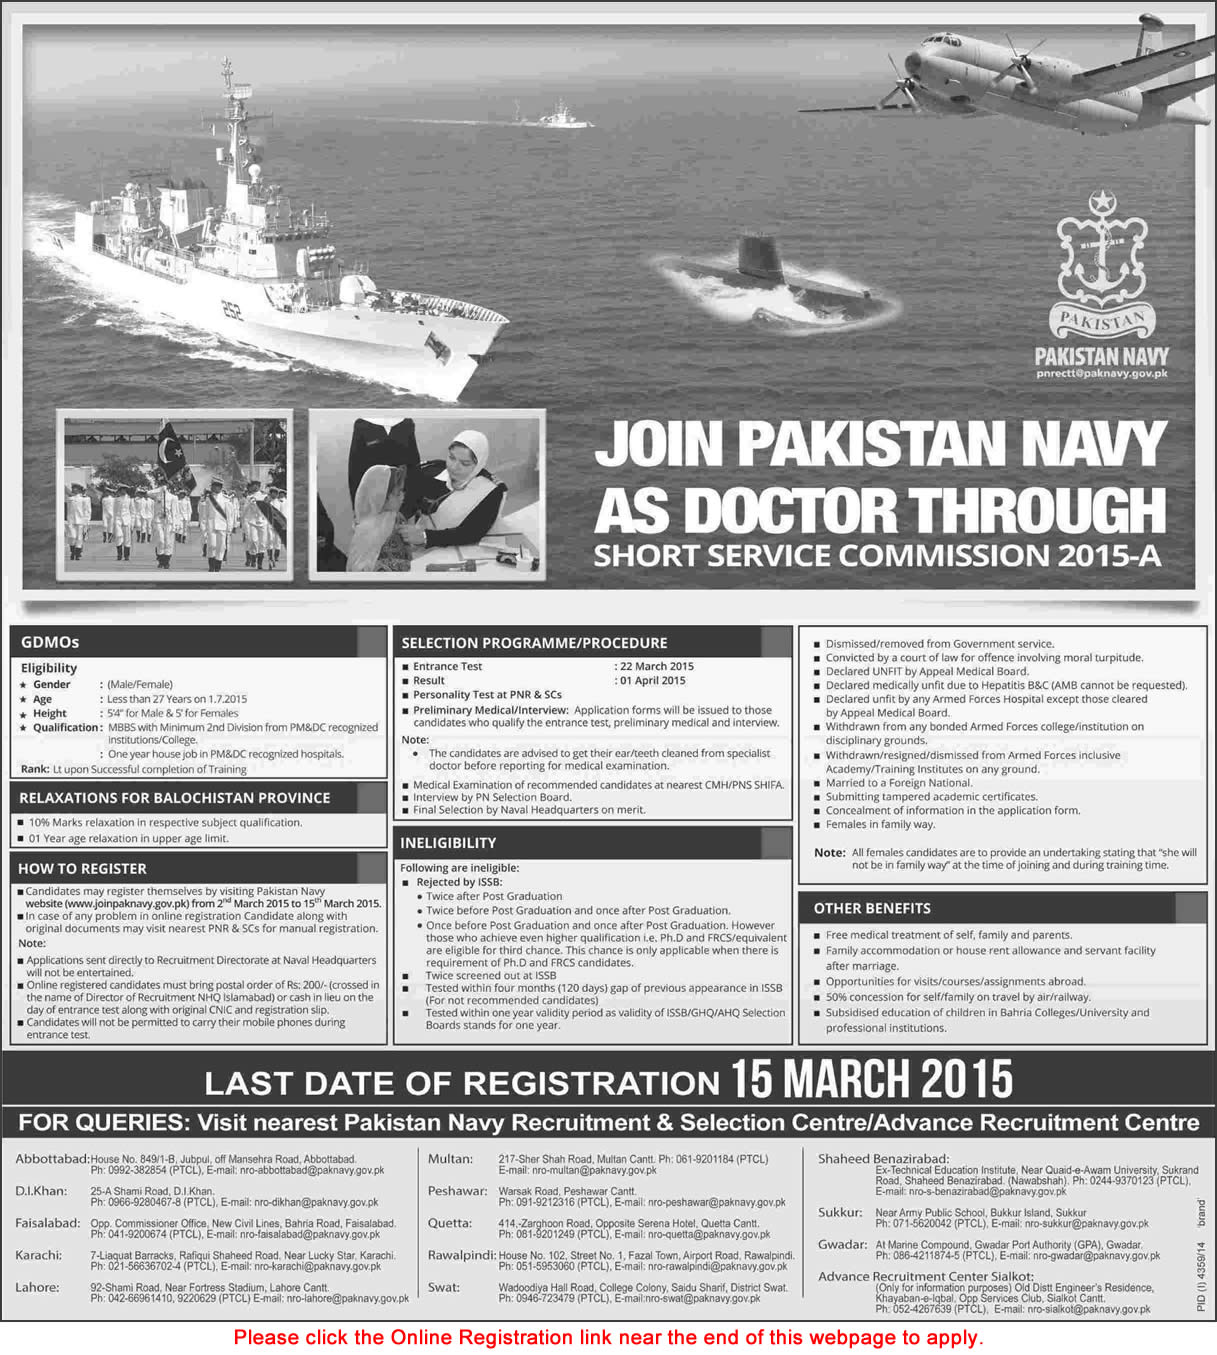 Join Pakistan Navy as Doctor 2015 March Online Registration Form ...